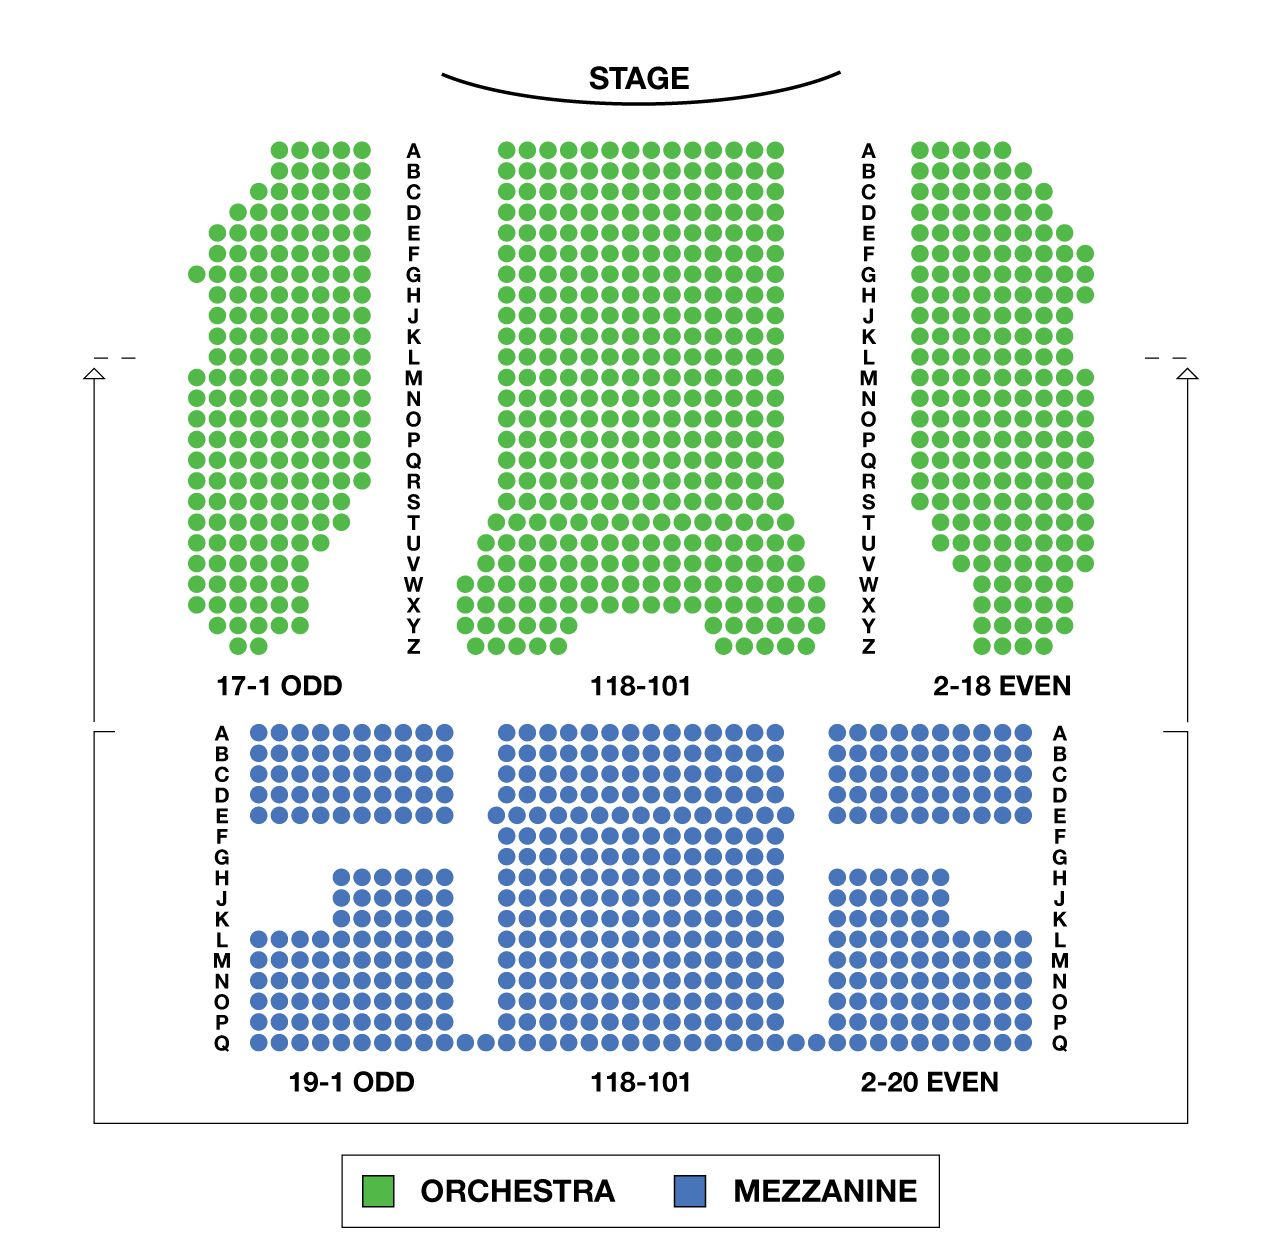 August wilson theatre large broadway seating charts for Broadway plan